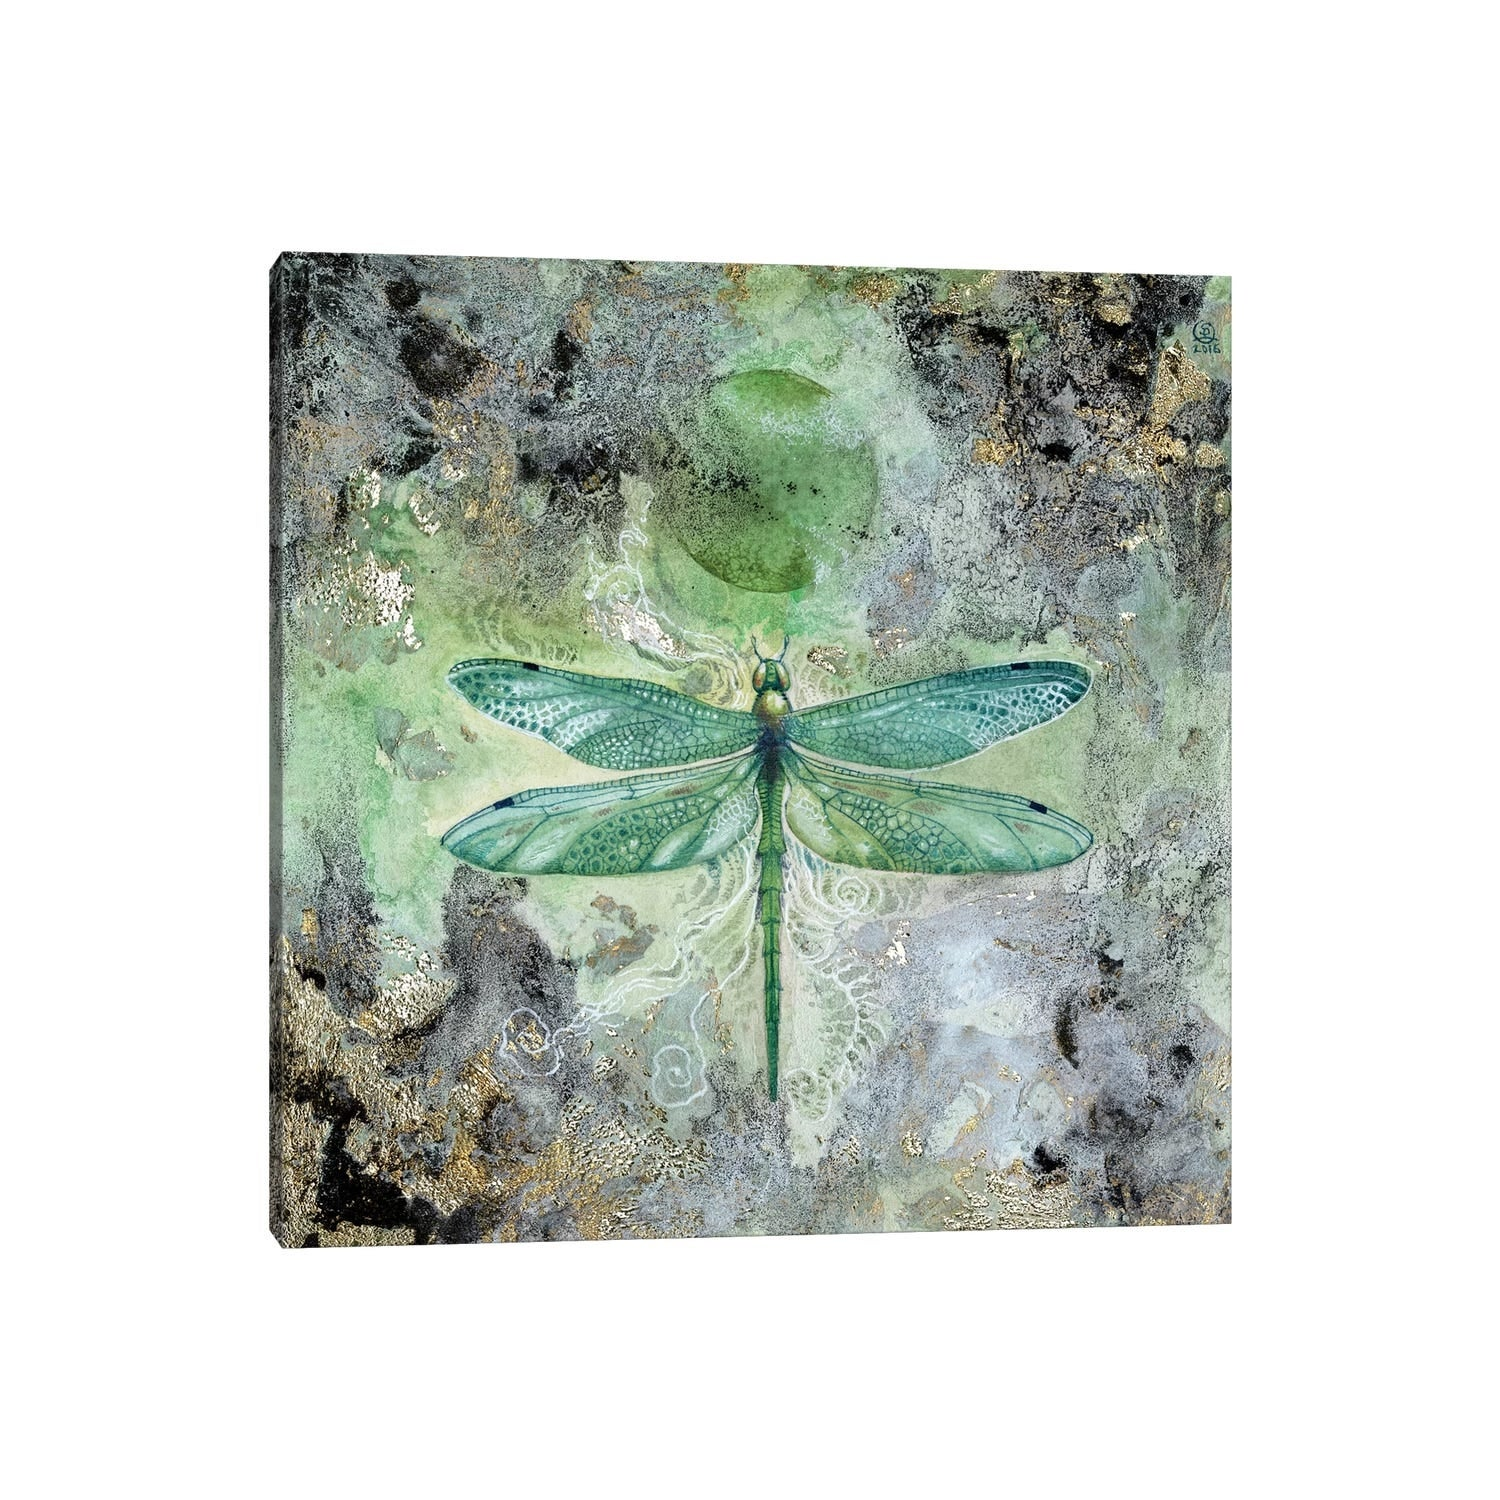 Icanvas Dragonfly V By Stephanie Law Canvas Print On Sale Overstock 26637629